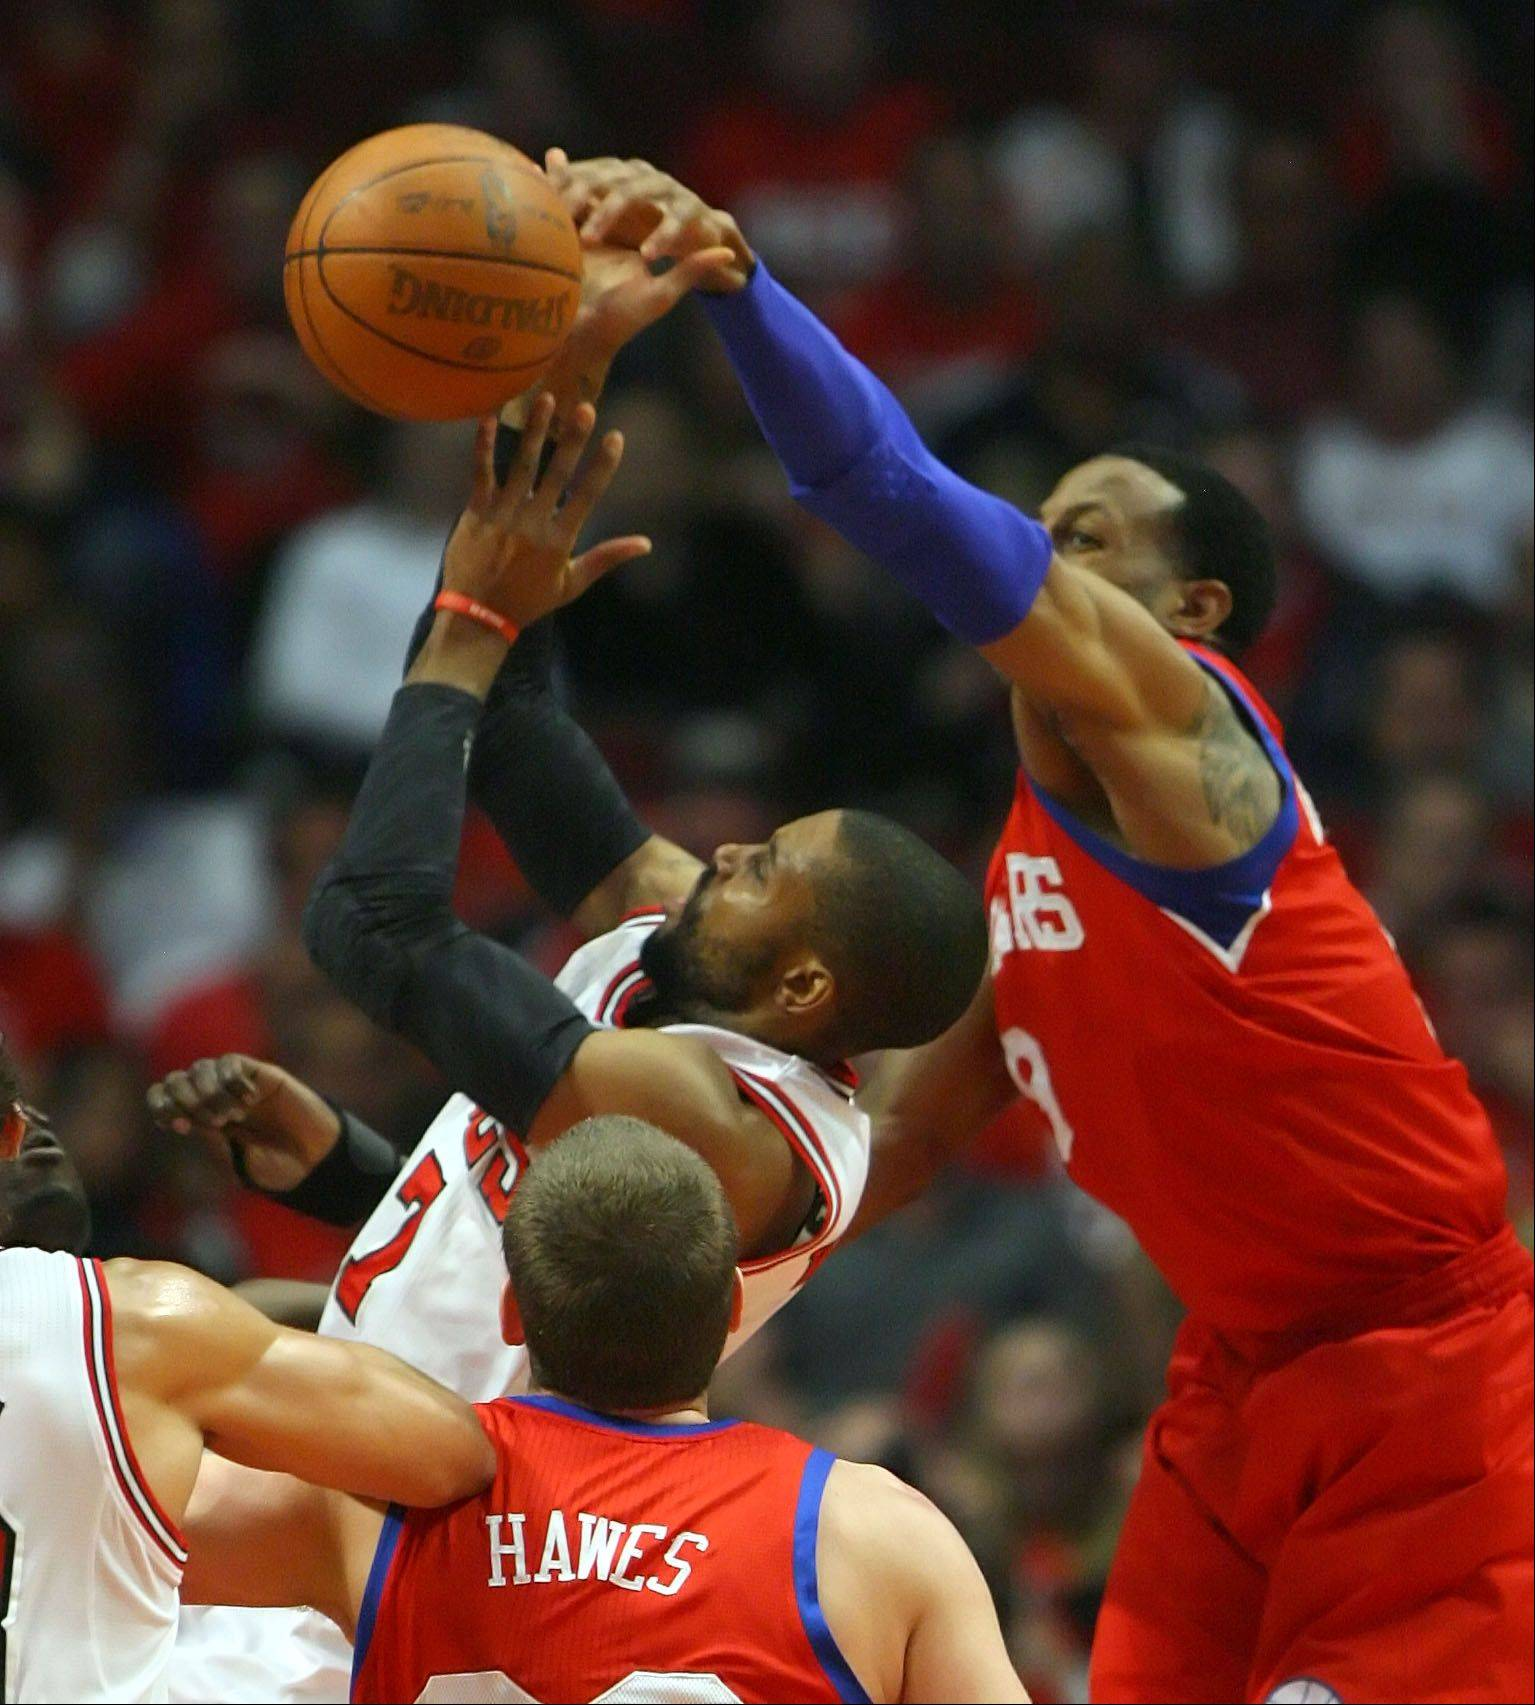 Chicago Bulls' C.J. Watson is blocked by Philadelphia 76ers' Andre Iguodala.